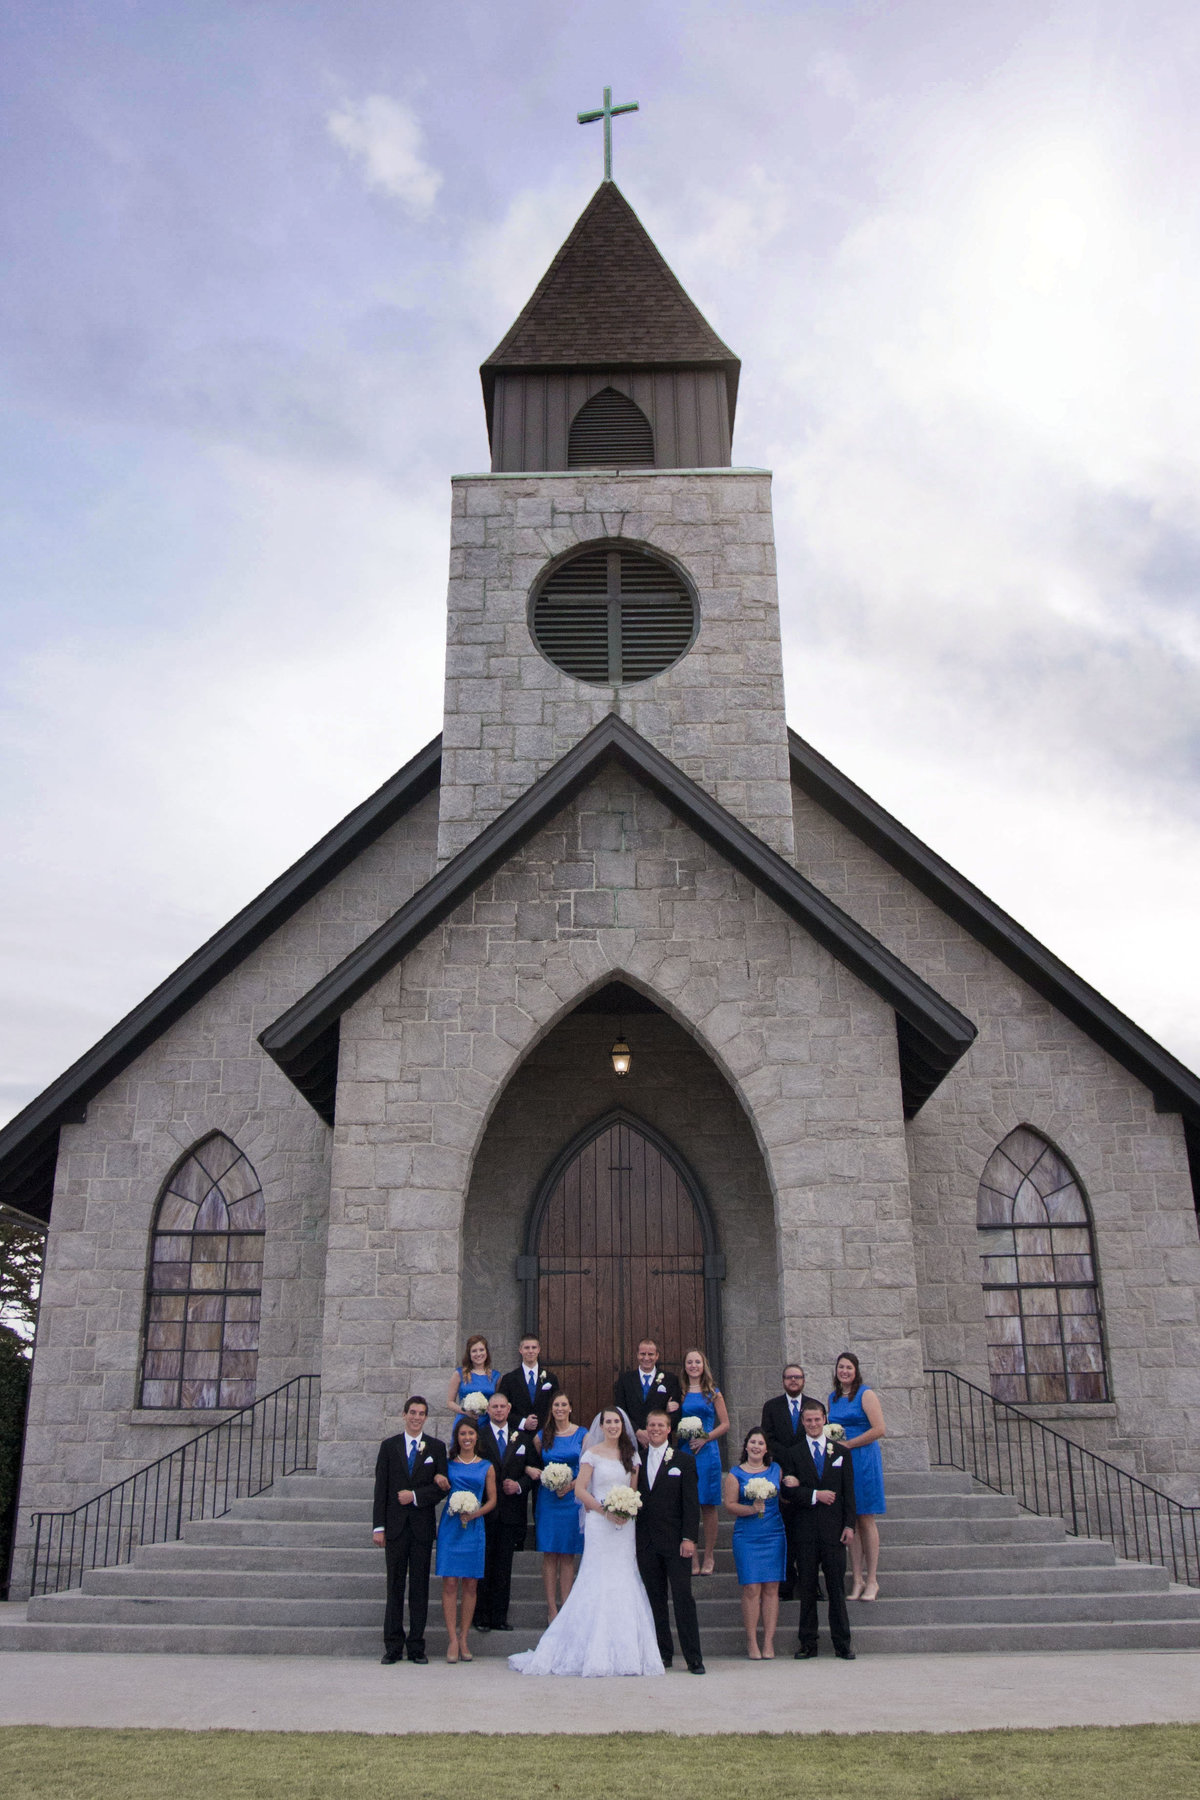 Bridal Party in front of stone church in royal blue